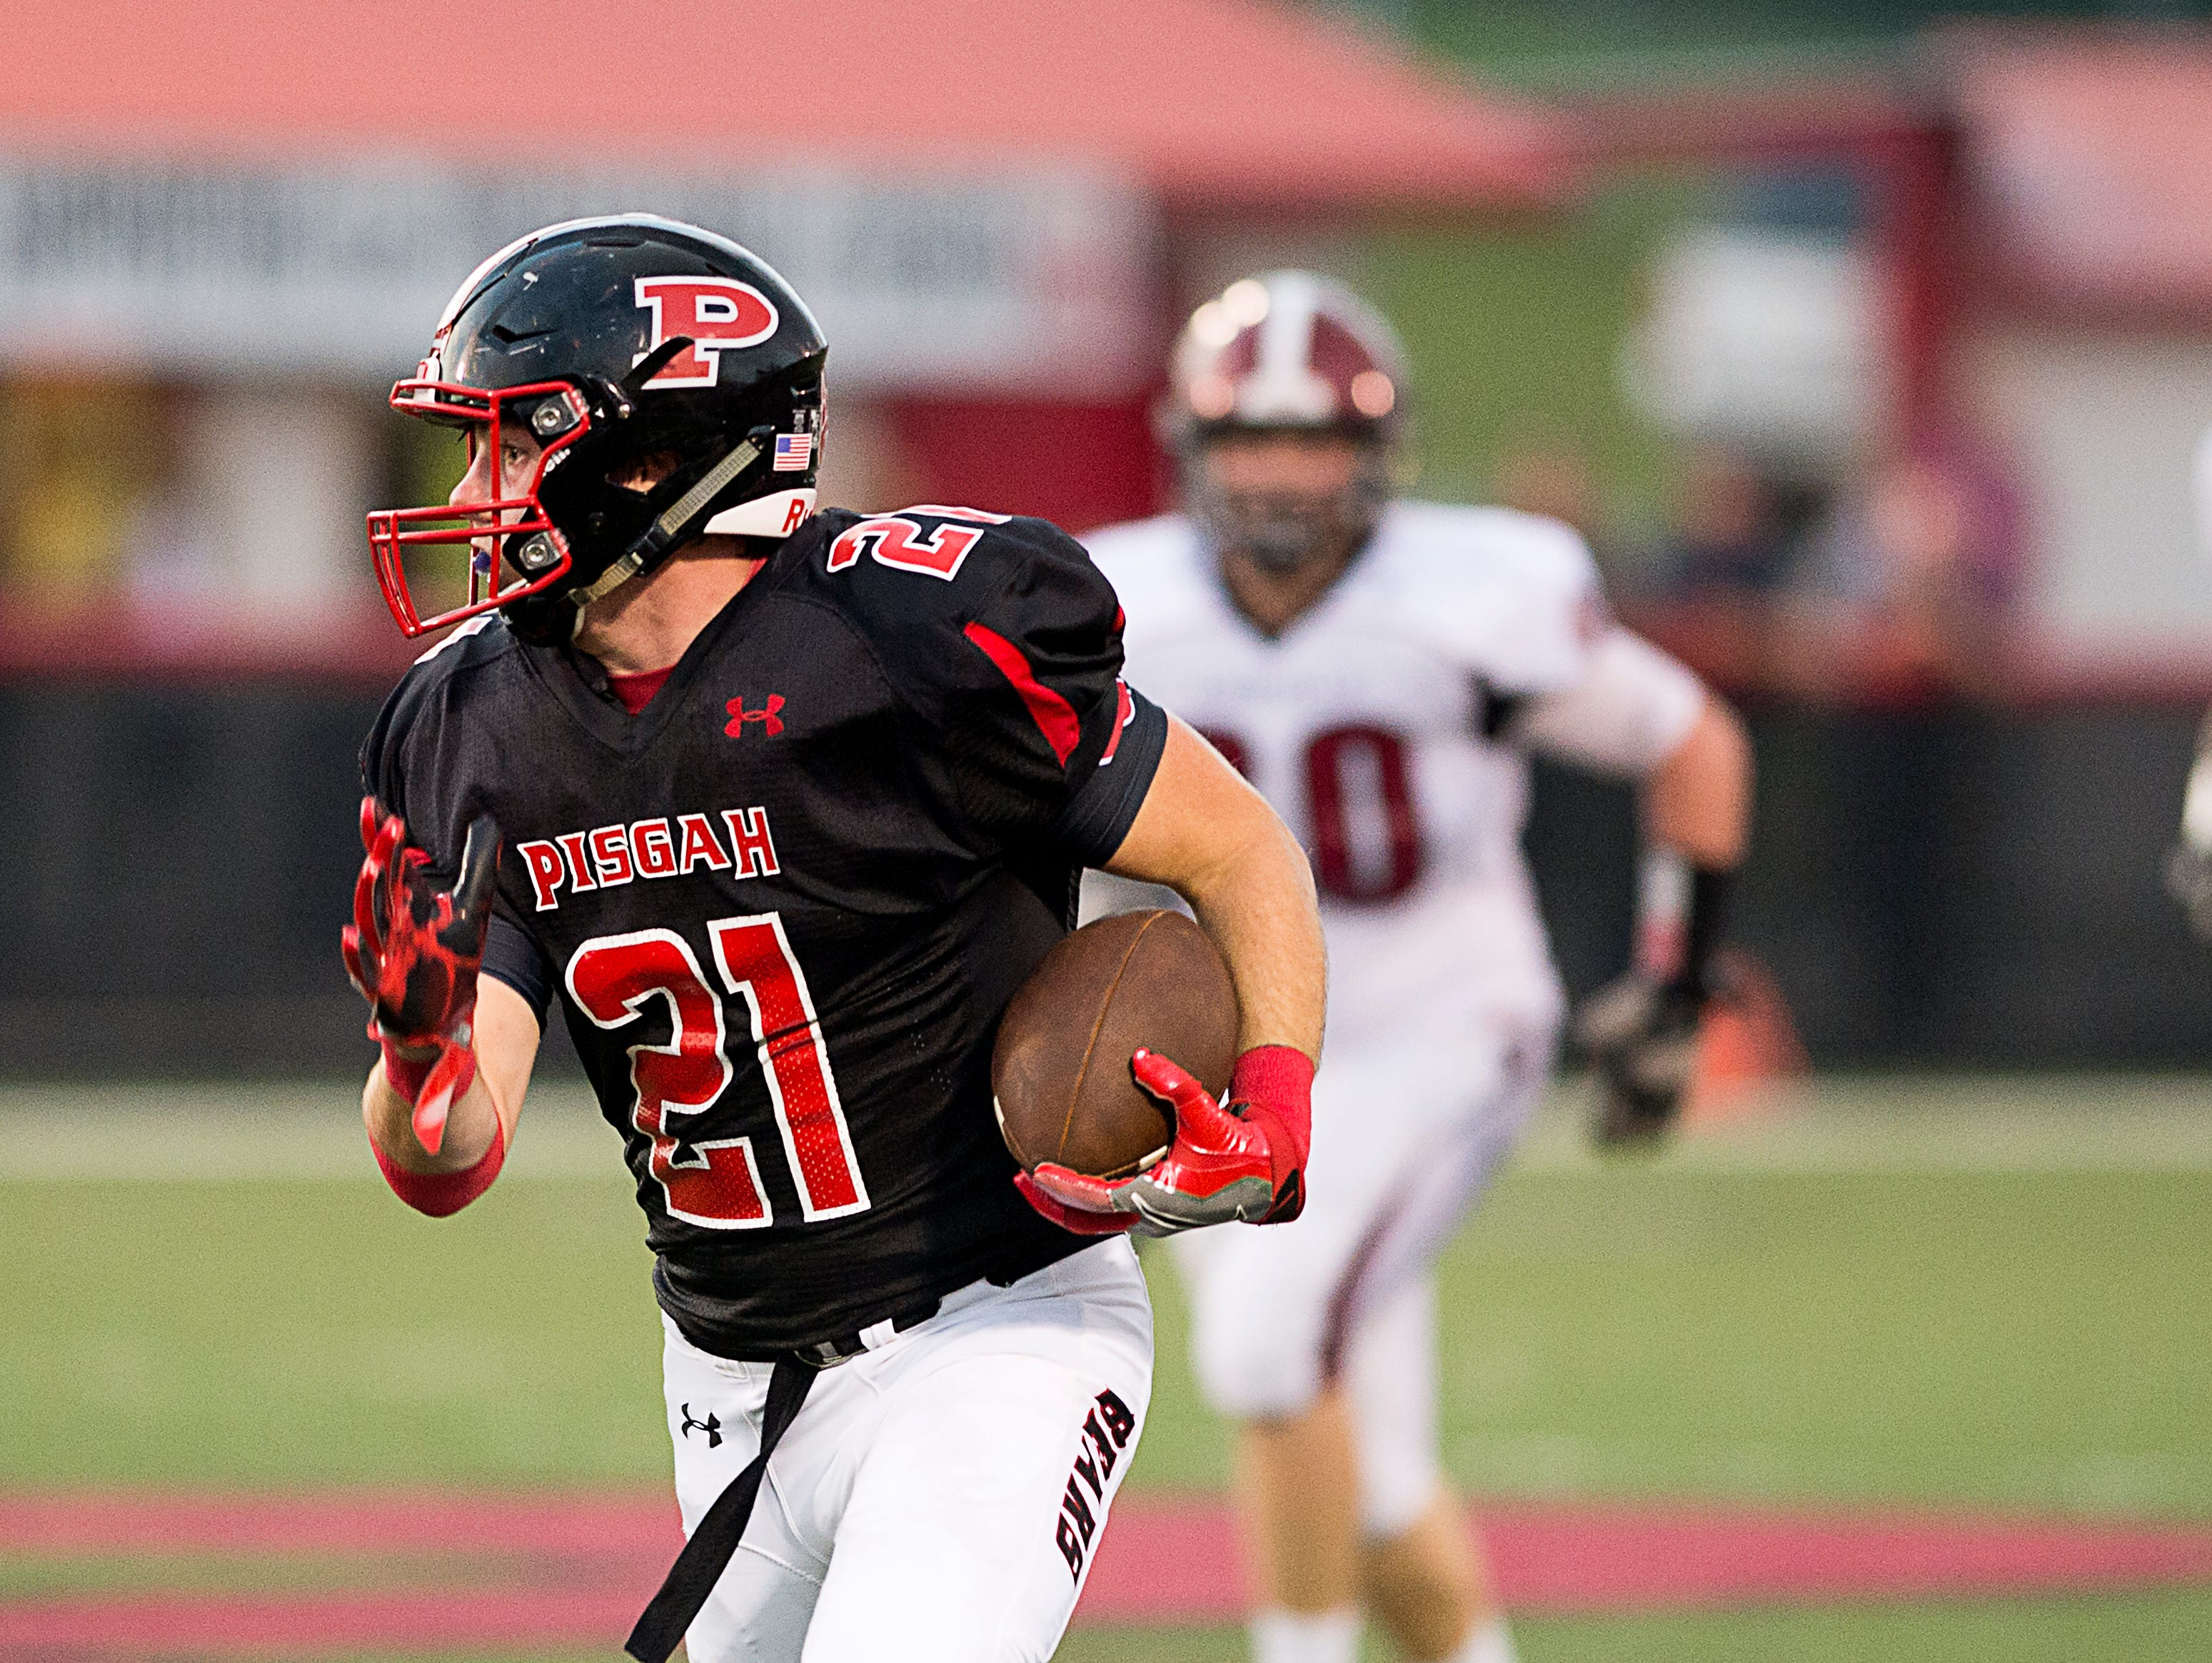 The Pisgah Black Bears defeated the Asheville Cougars 17-14 Thursday evening Sept. 1 in Haywood County.